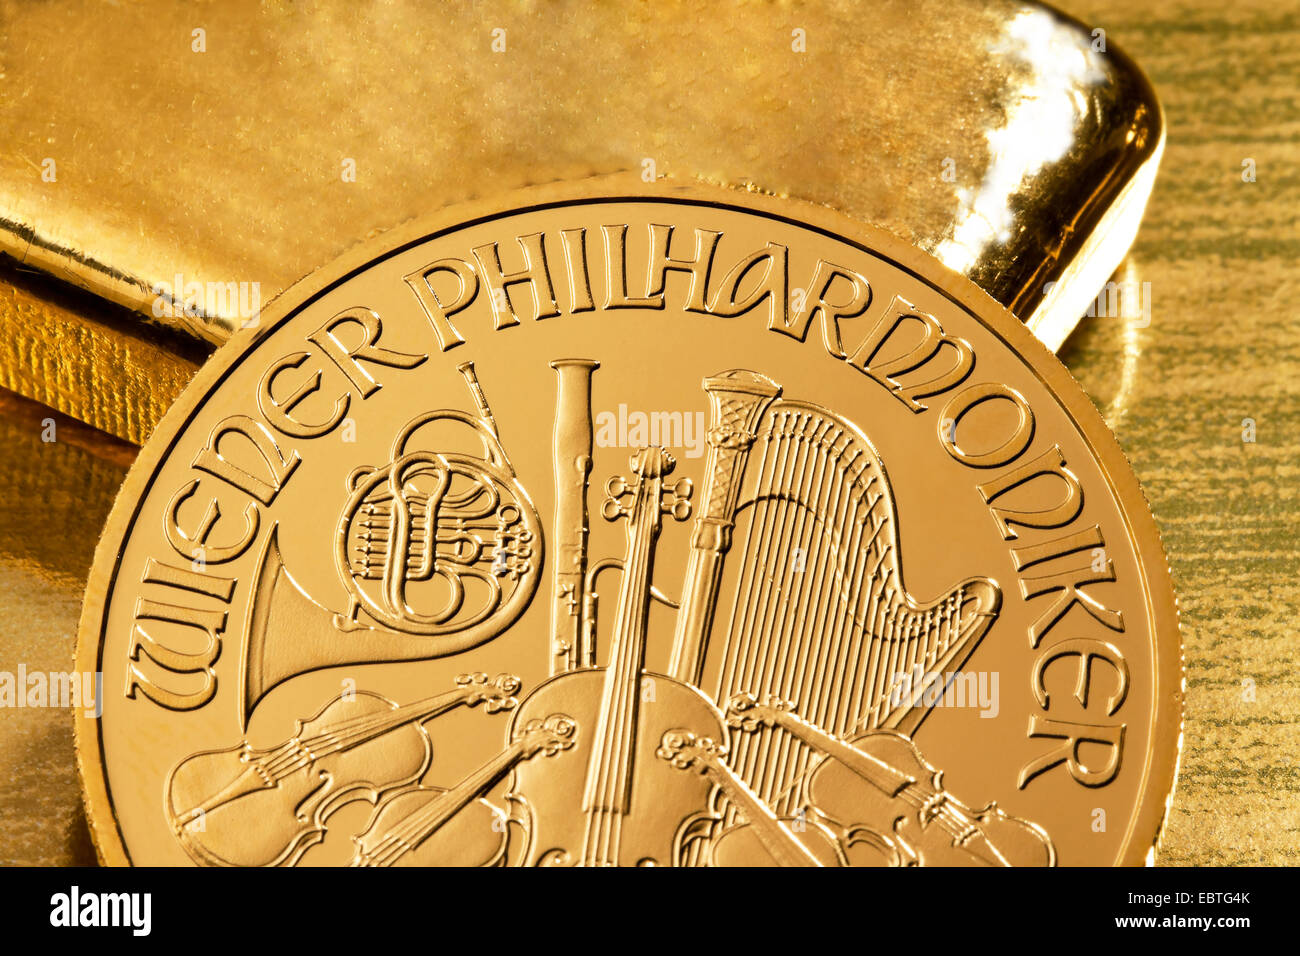 gold bullion and gold coin of Wiener Philharmoniker - Stock Image